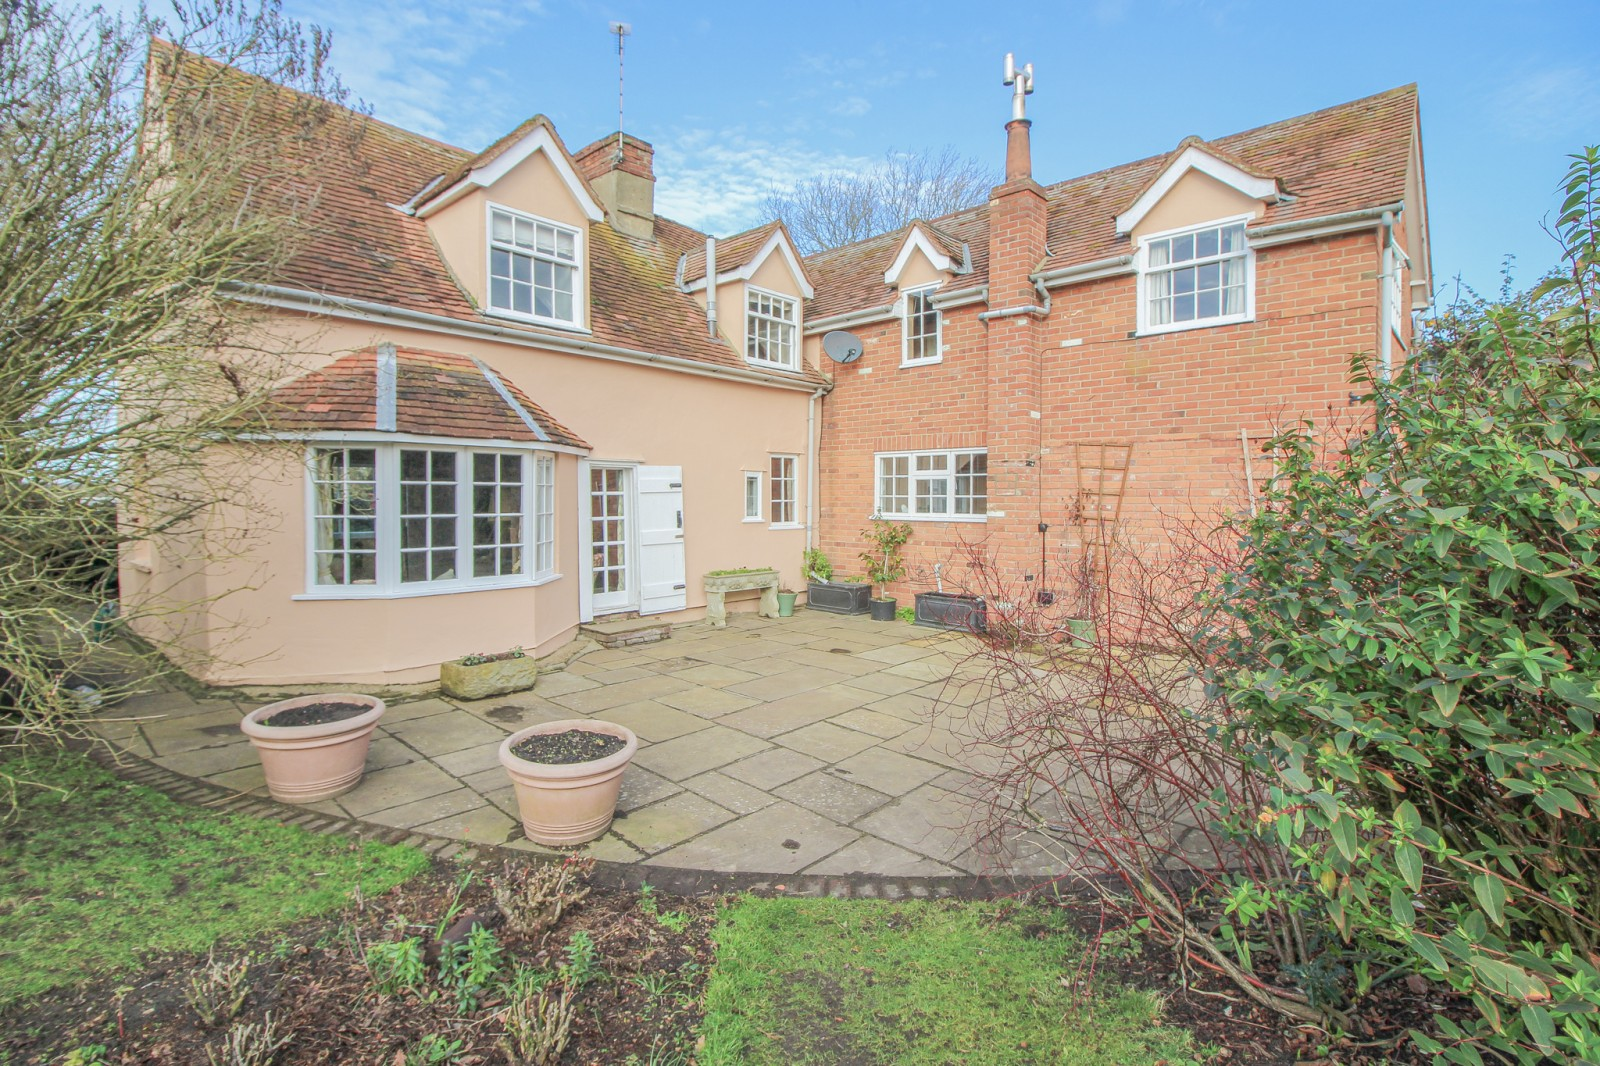 Chapel Road, Pigsfoot Green, Fingringhoe, Colchester, Essex, CO5